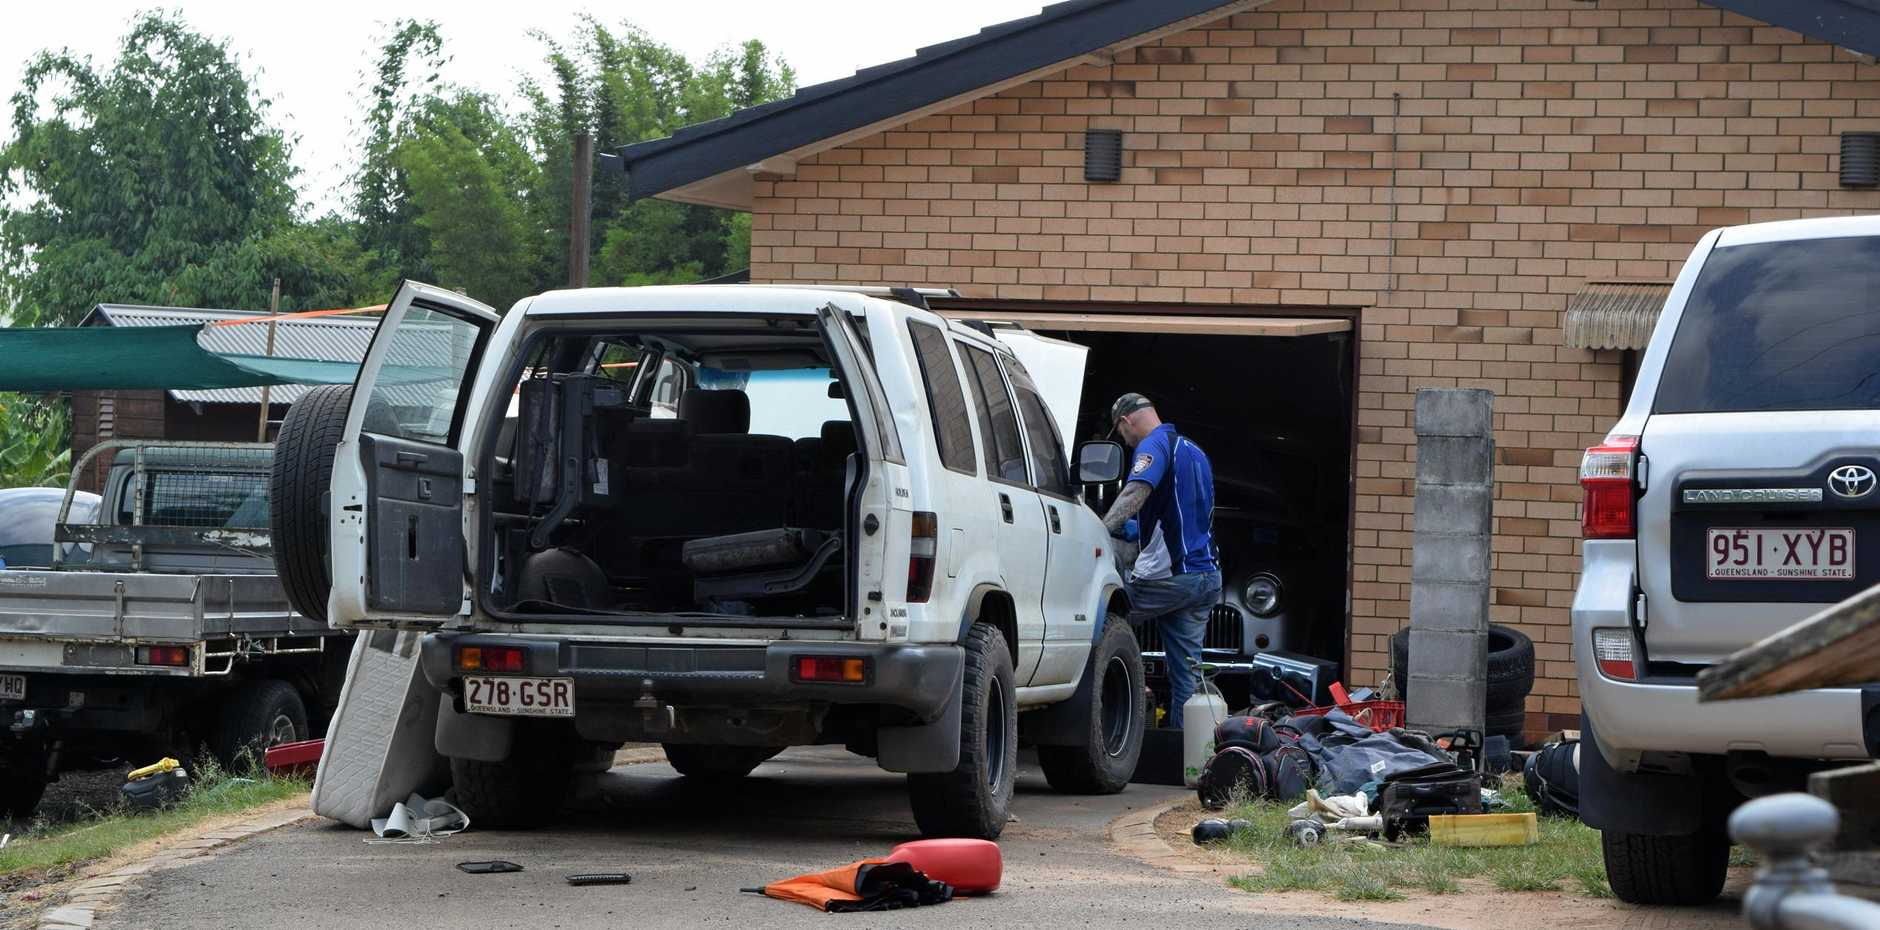 Multiple police officers in unmarked vehicles raided a Woombye home early Monday morning and arrested multiple people in relation to an alleged drug operation.